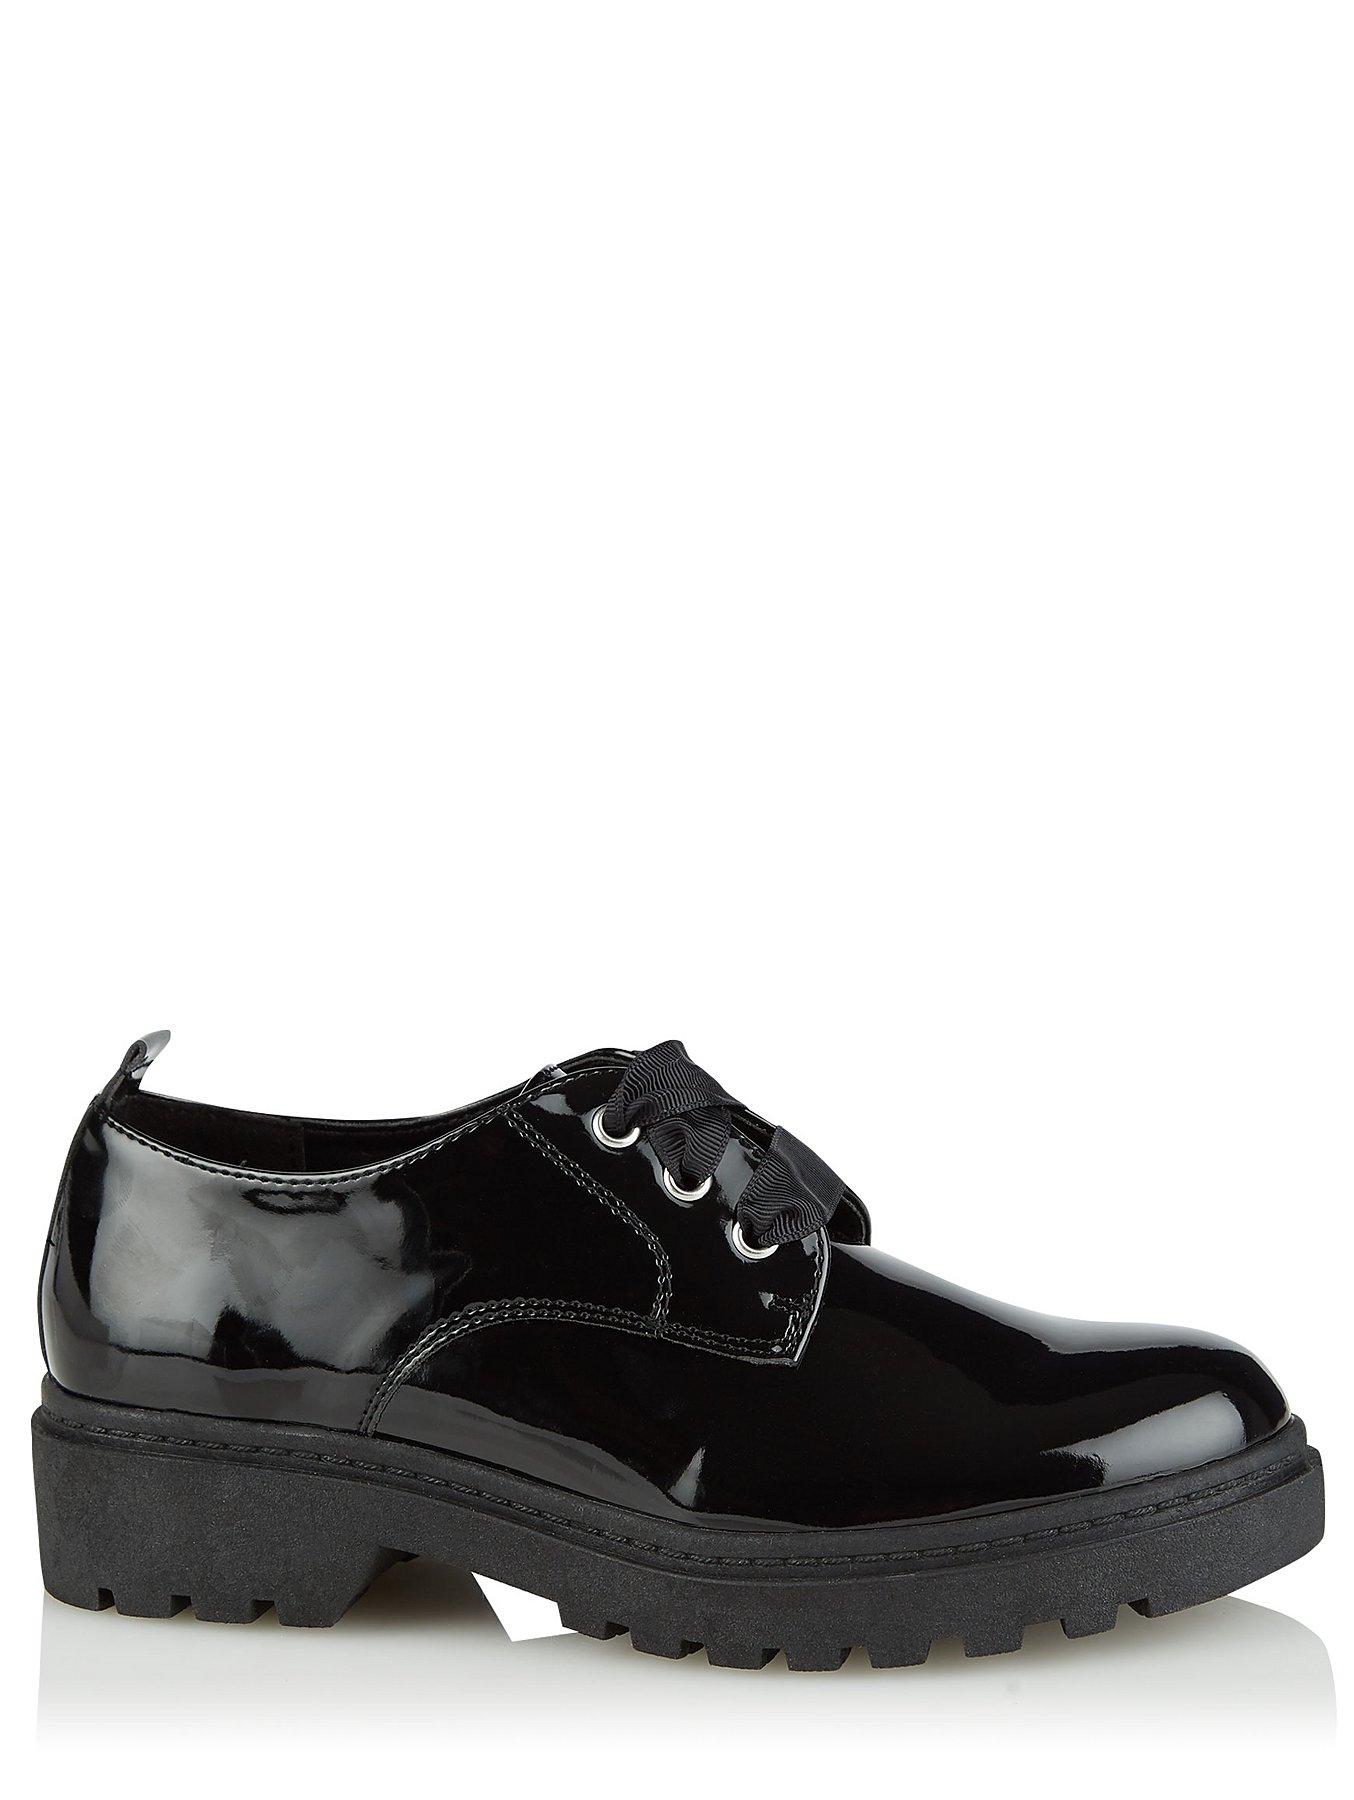 asda black girls lace up school shoes